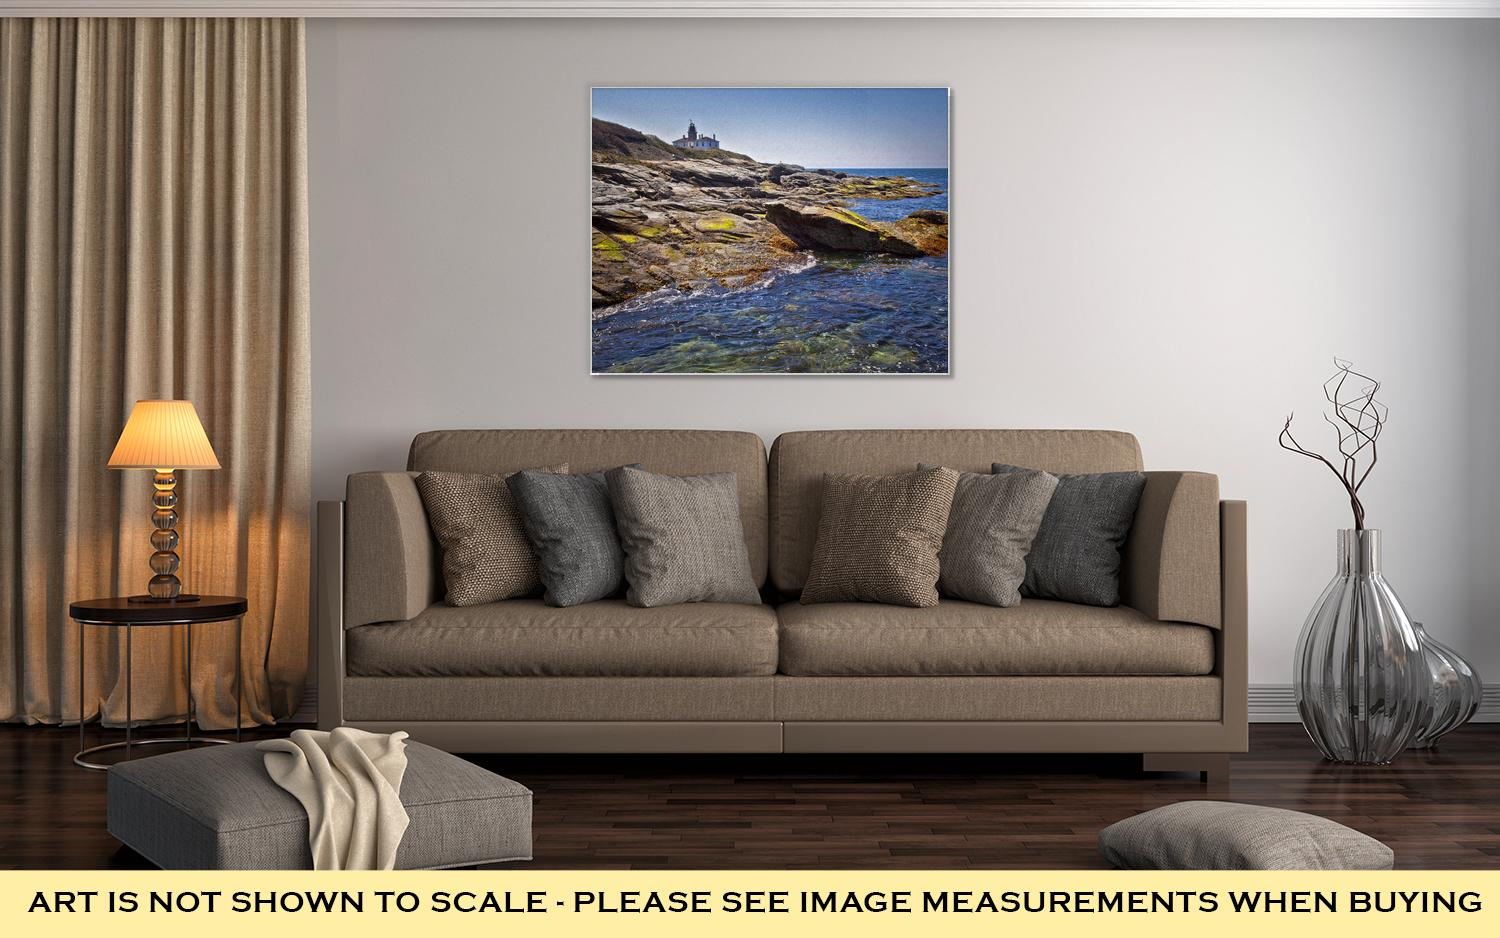 Gallery Wrapped Canvas, Beavertail Lighthouse In Newport